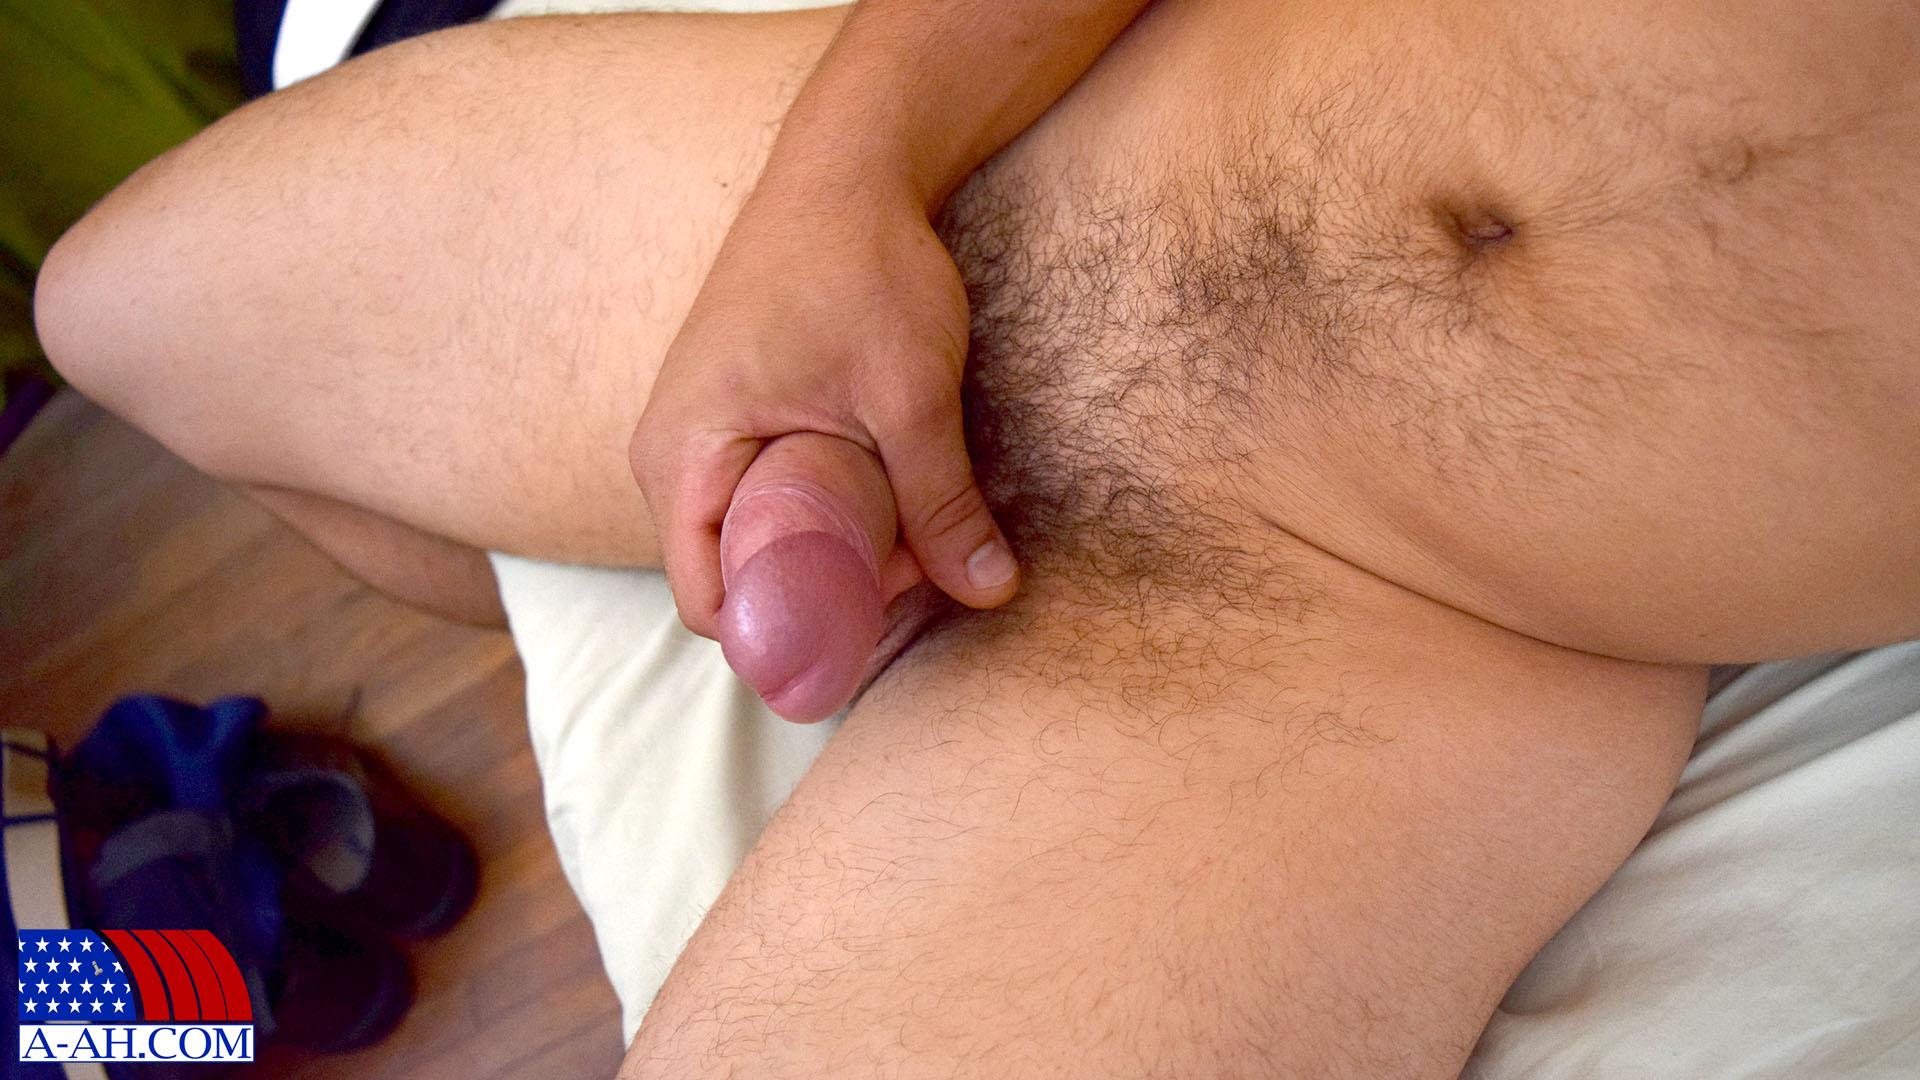 All-American-Heroes-Lance-Corporal-Roque-Naked-Marine-Jerking-His-Thick-Uncut-Cock-Amateur-Gay-Porn-08 United States Marine Stroking His Thick Uncut Cock